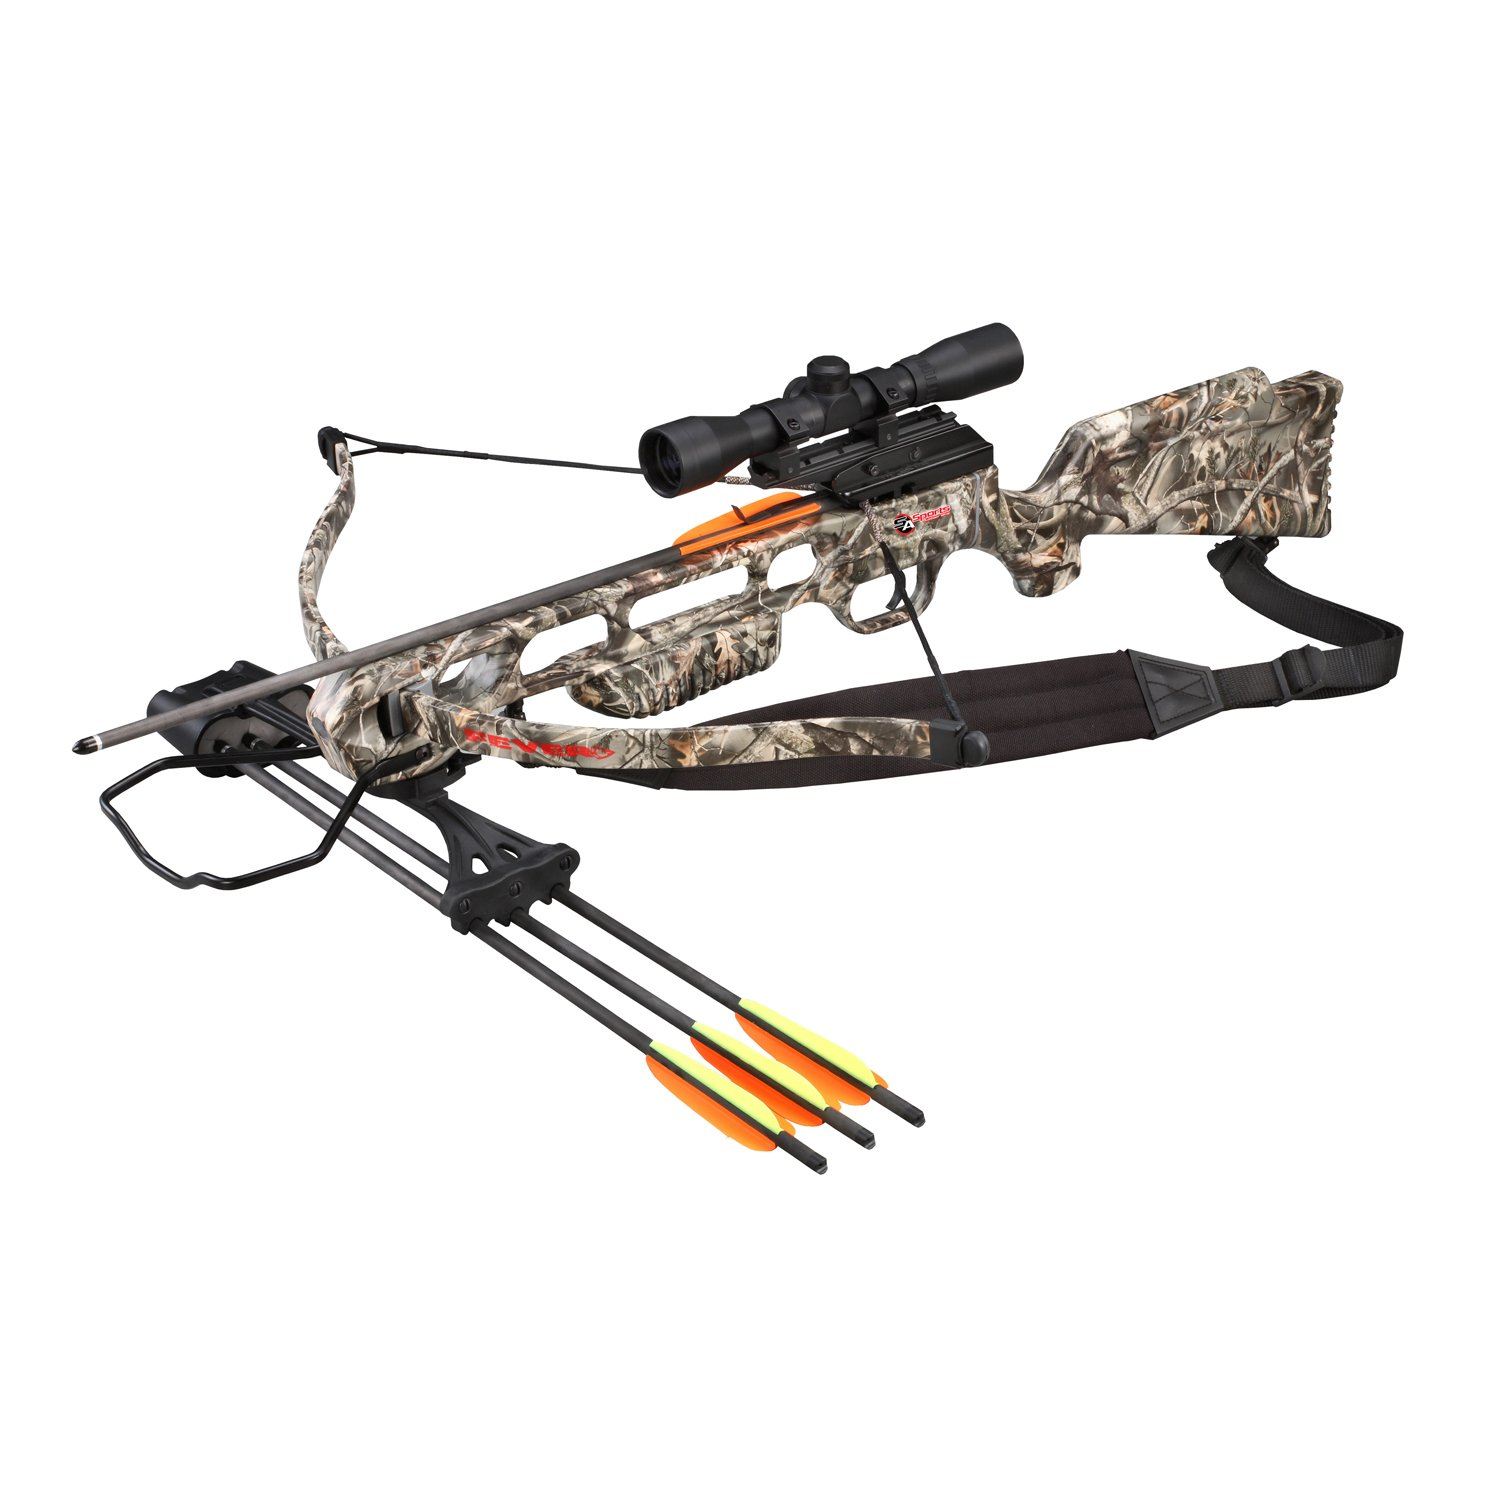 SA Sports Fever Crossbow Package 543 by SA Sports